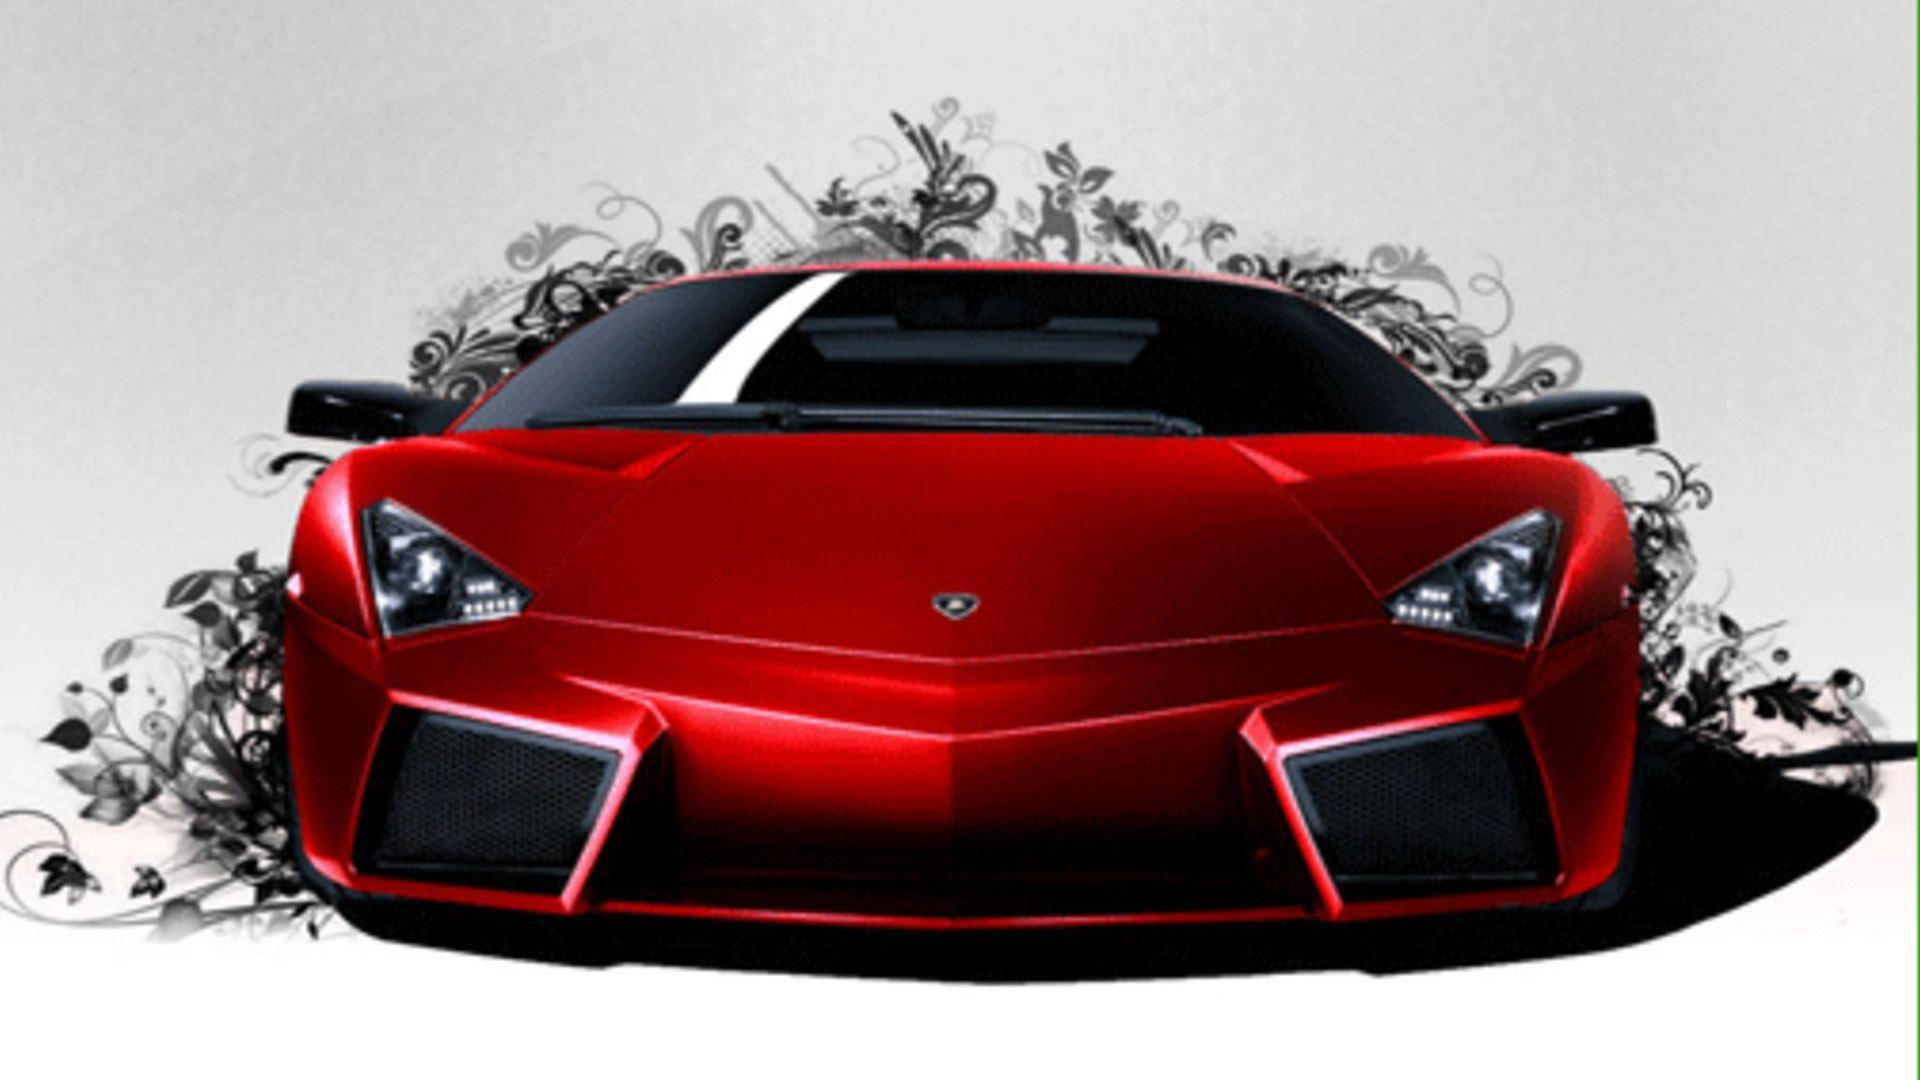 Red Lamborghini Reventon Wallpapers Wallpaper Cave